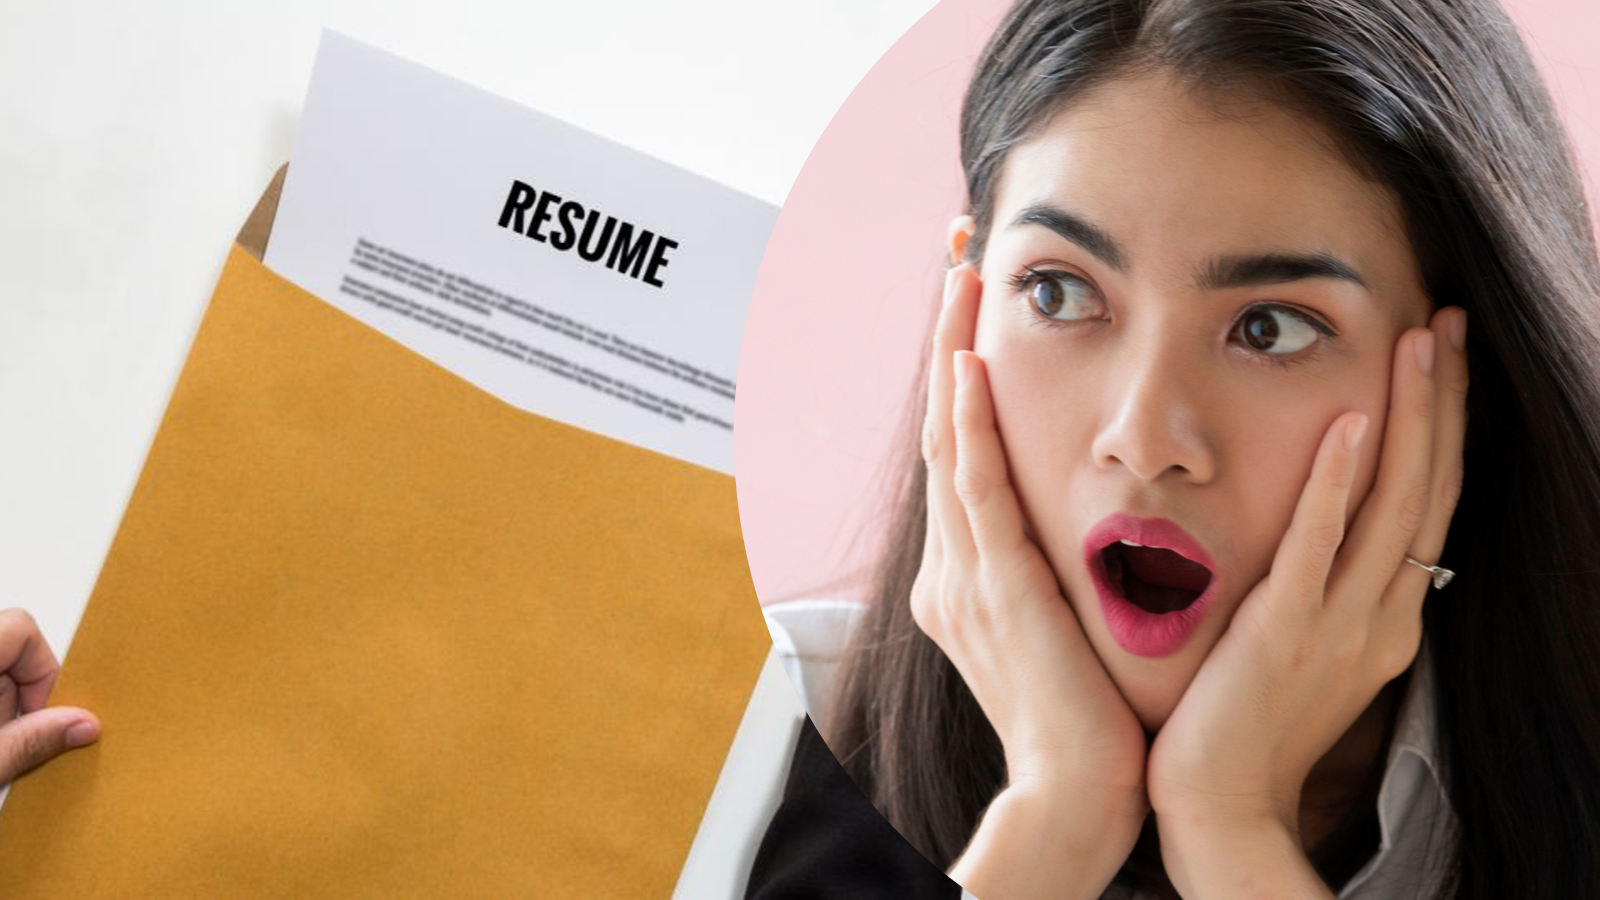 Your resumé just went into the bin. Here's why